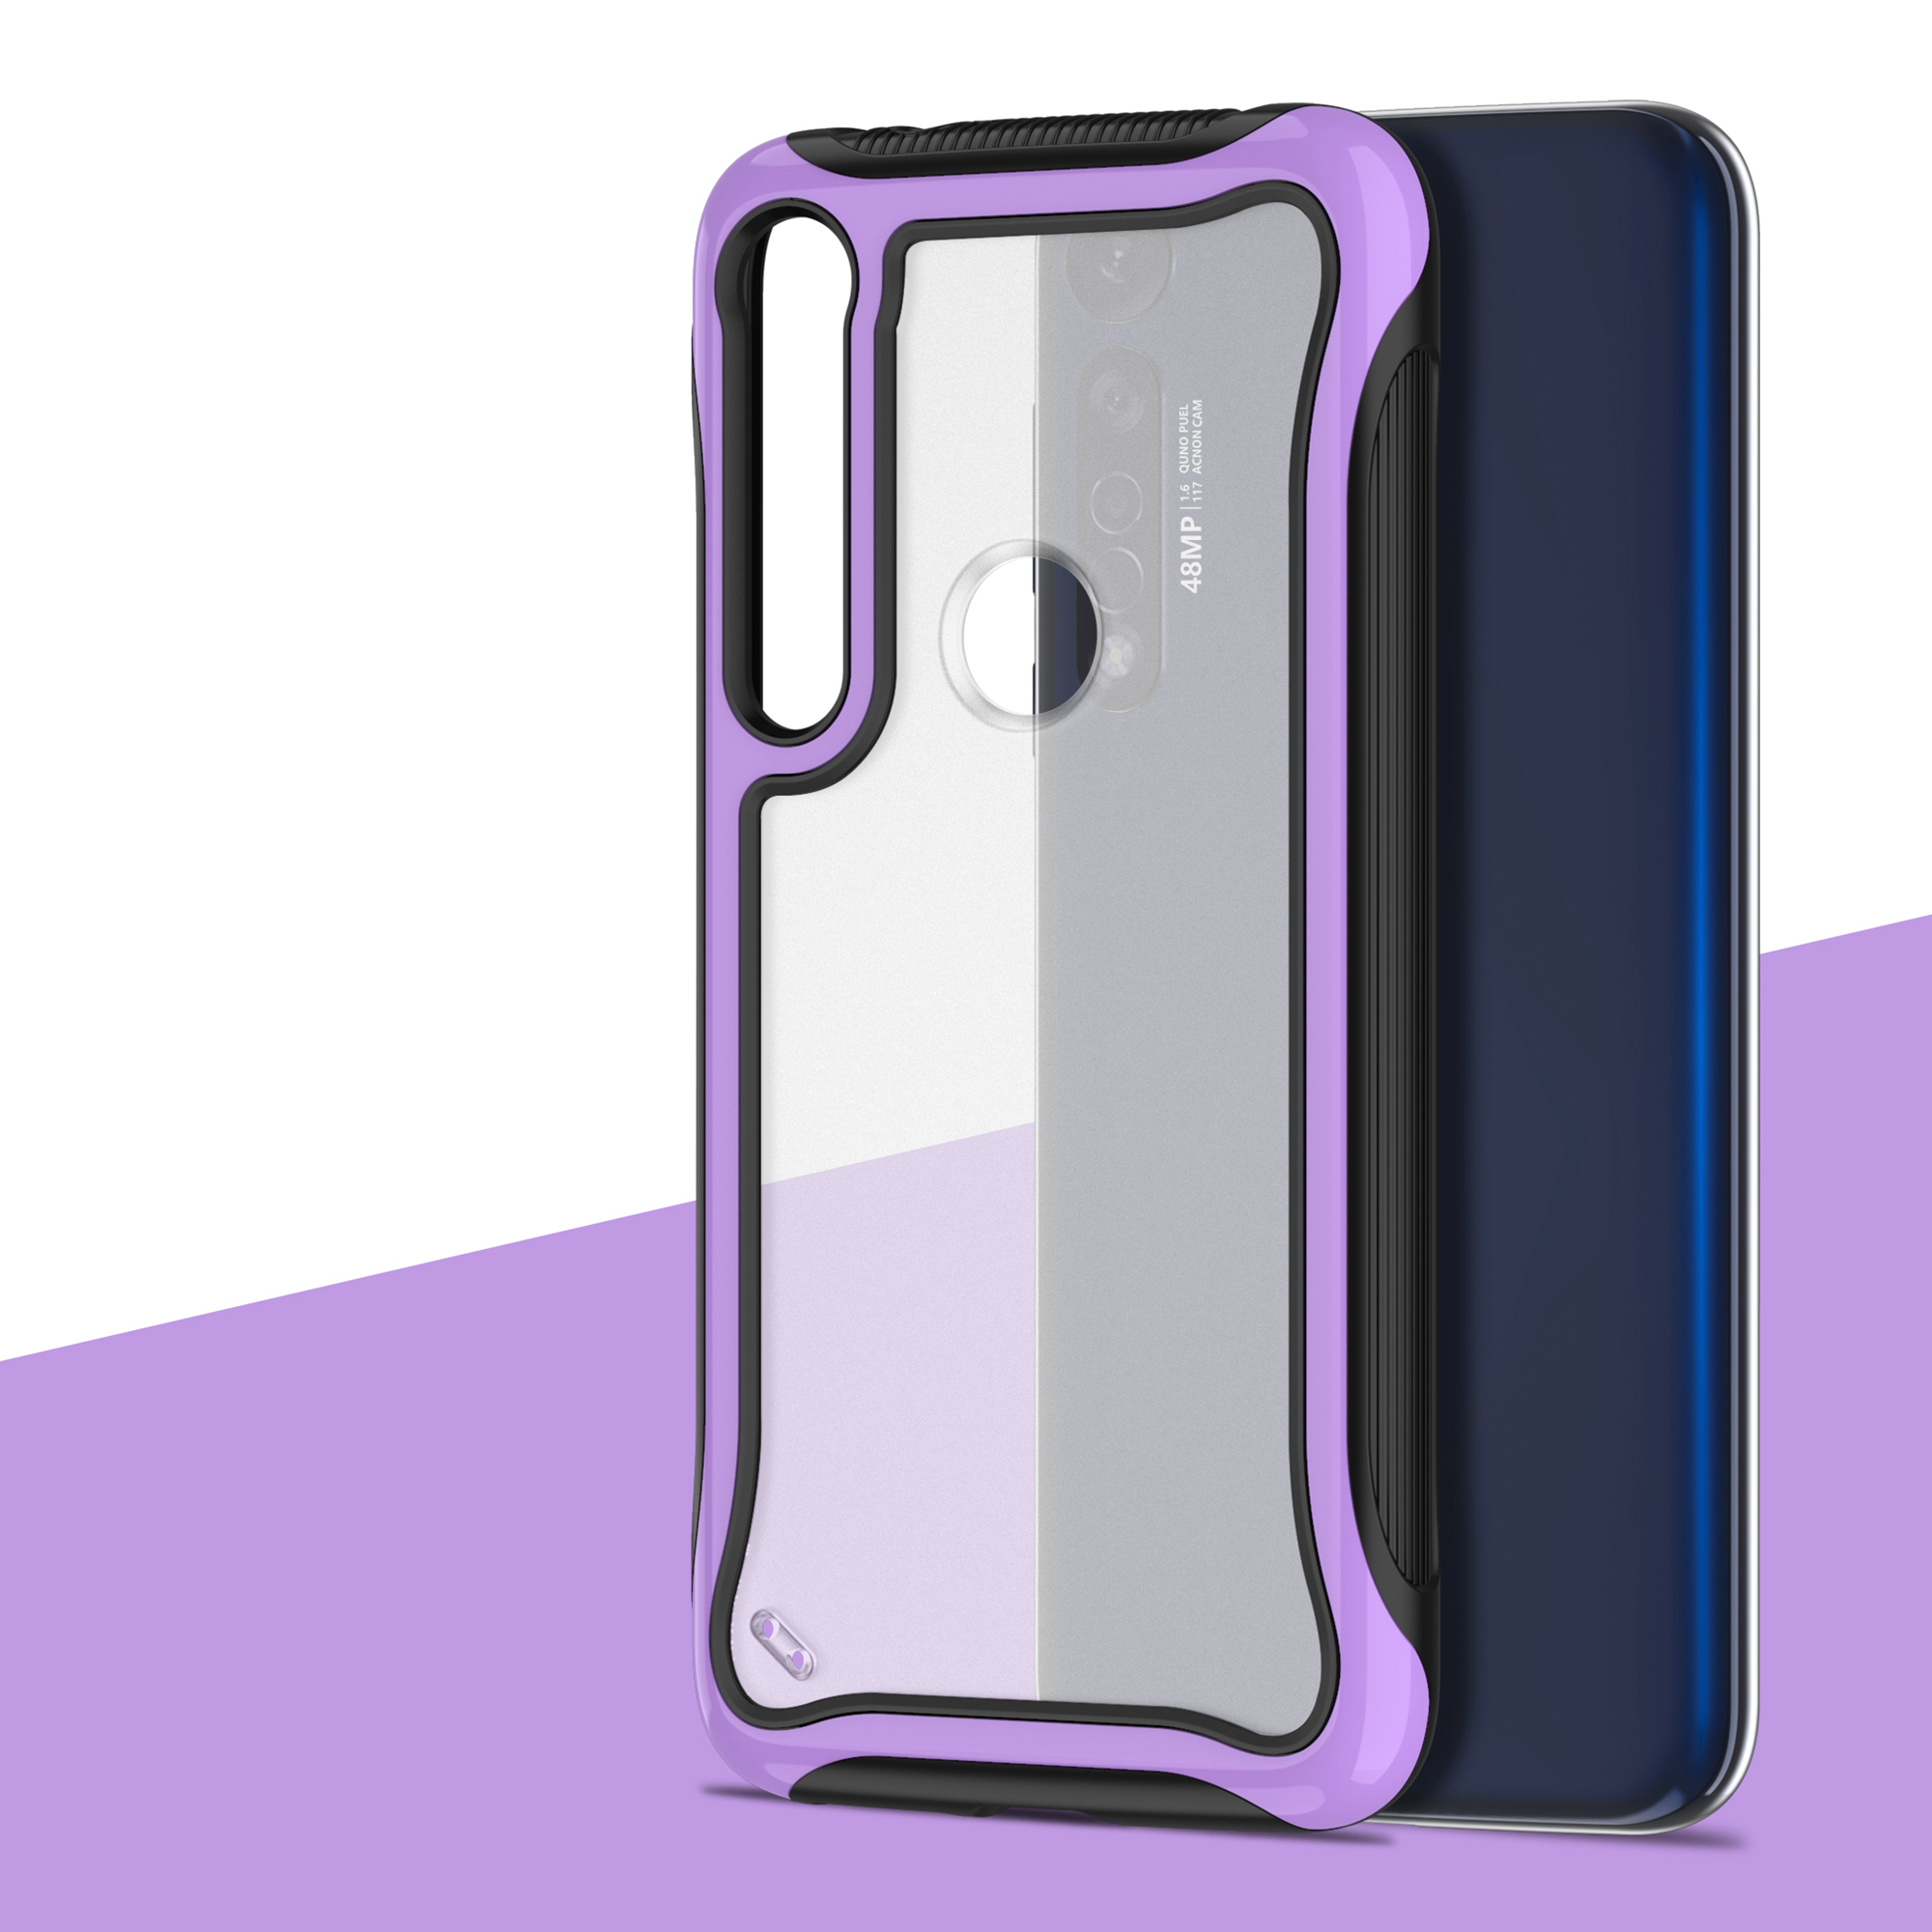 Armor Hard PC Phone Case For Motorola Moto G8 Plus G8 Play G7 Power One Macro Vision E5 Play Go Shockproof Clear Silicone Cover